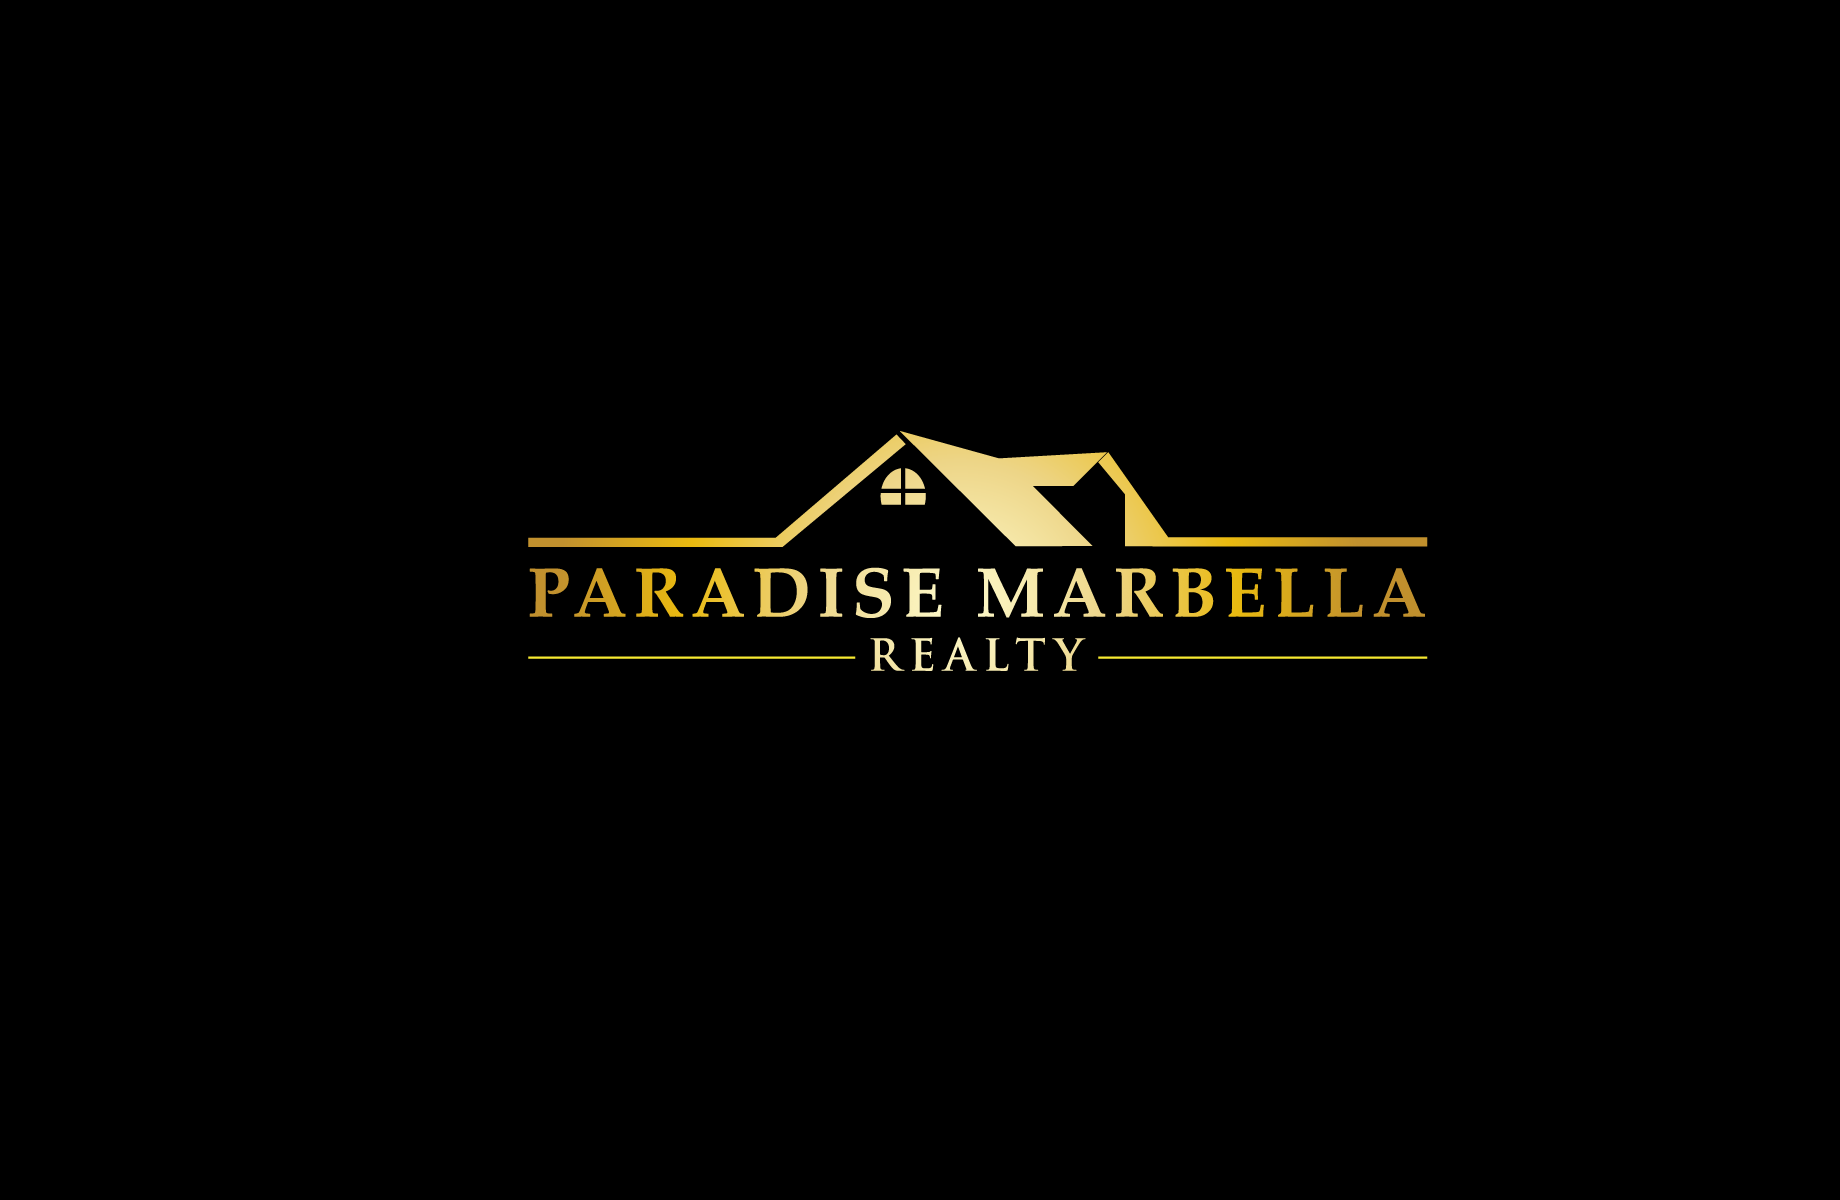 Logo Design by Jan Chua - Entry No. 112 in the Logo Design Contest Captivating Logo Design for Paradise Marbella Realty.